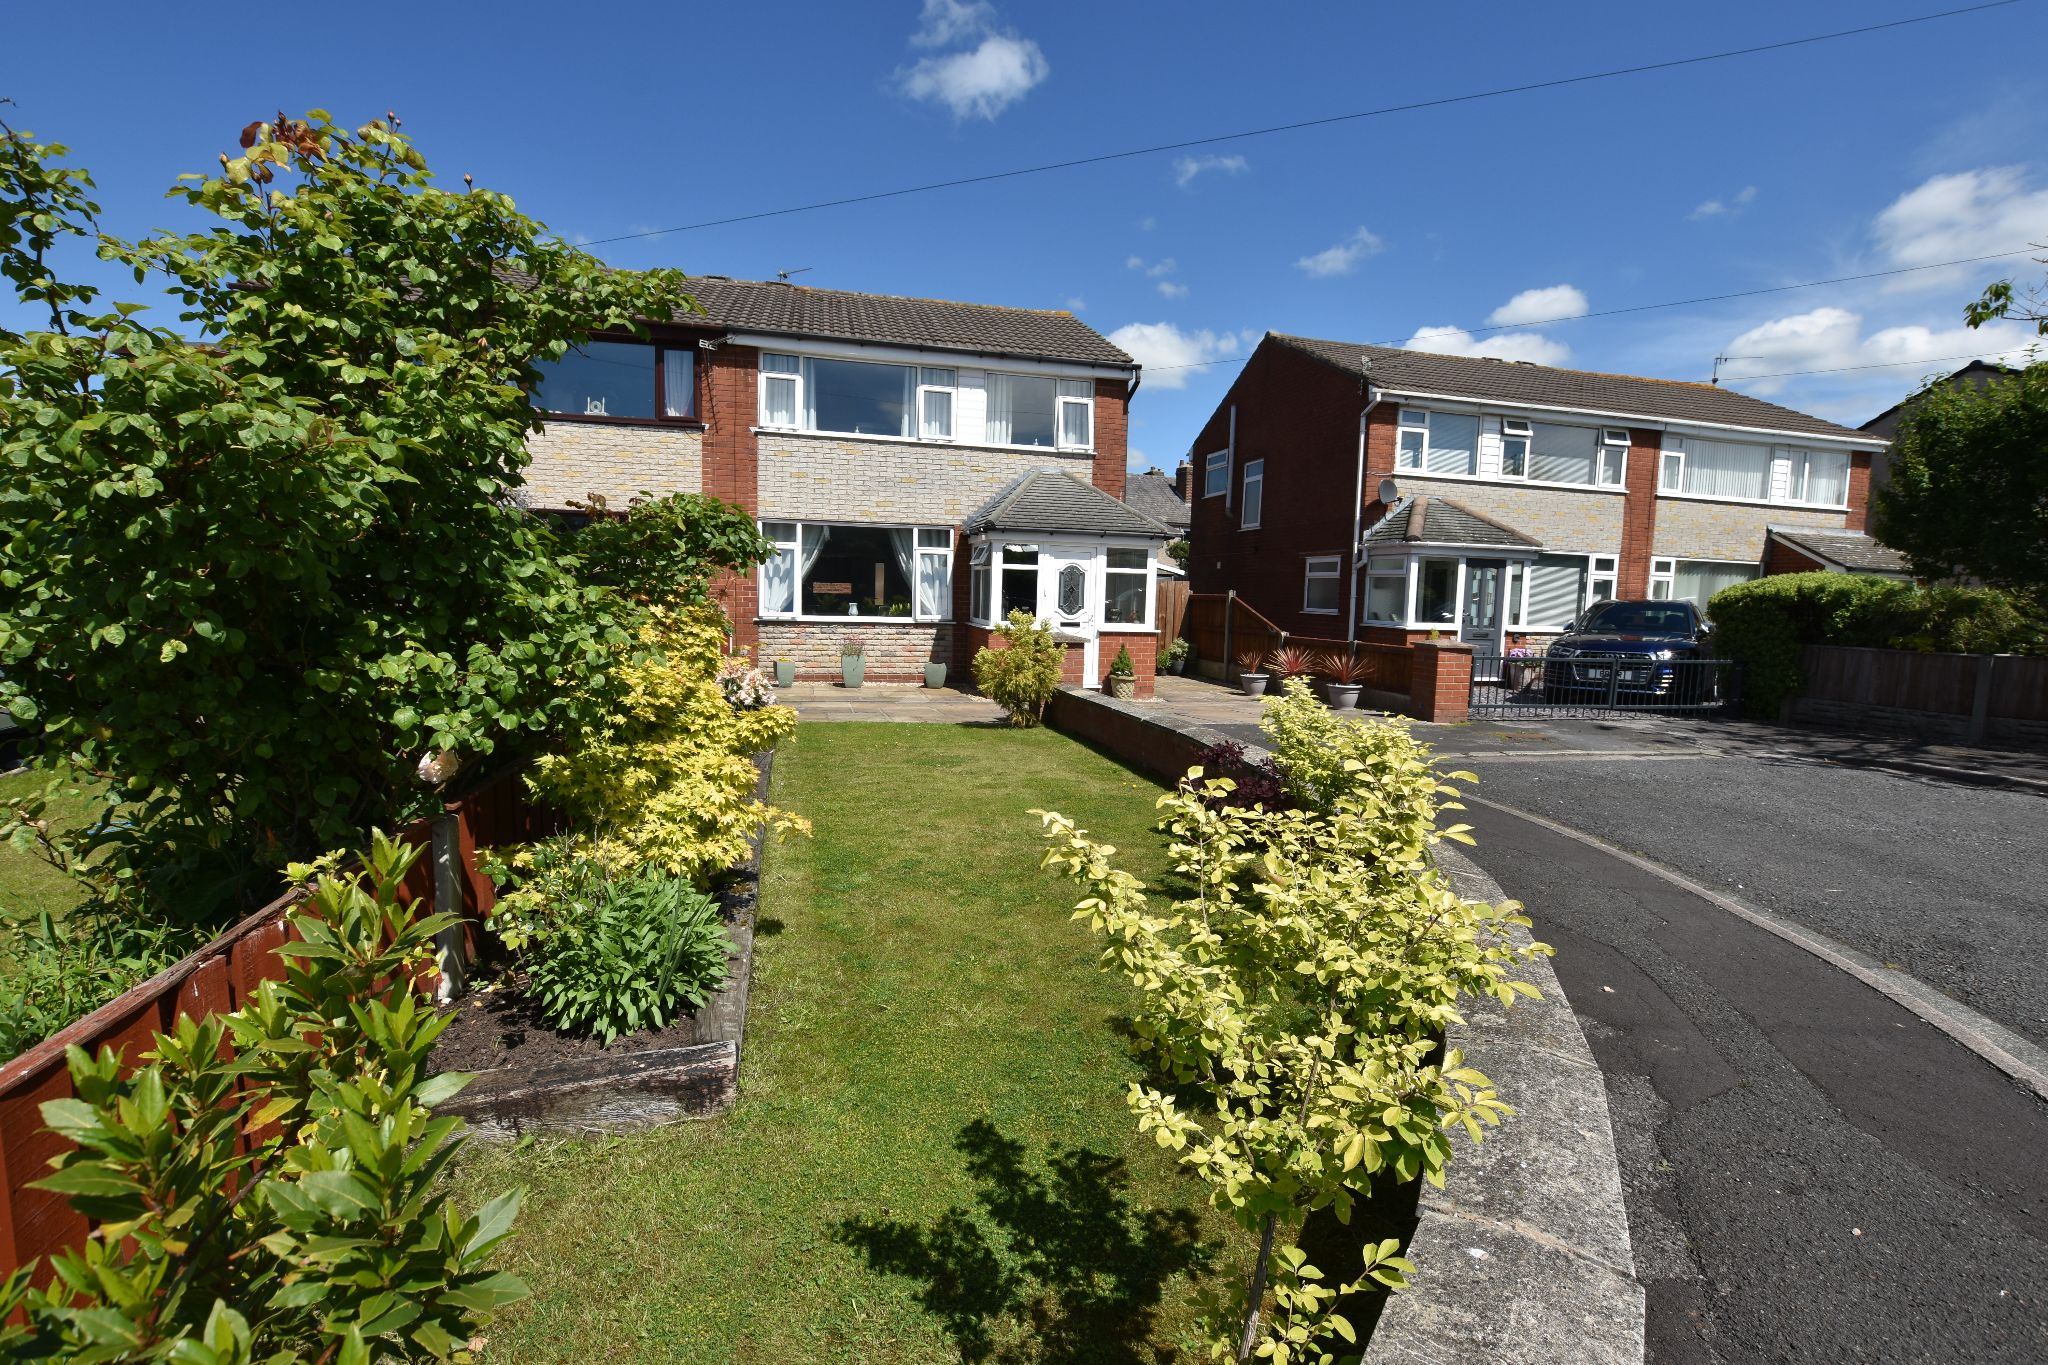 3 bedroom semi-detached house Sold STC in Preston - Kirby Drive